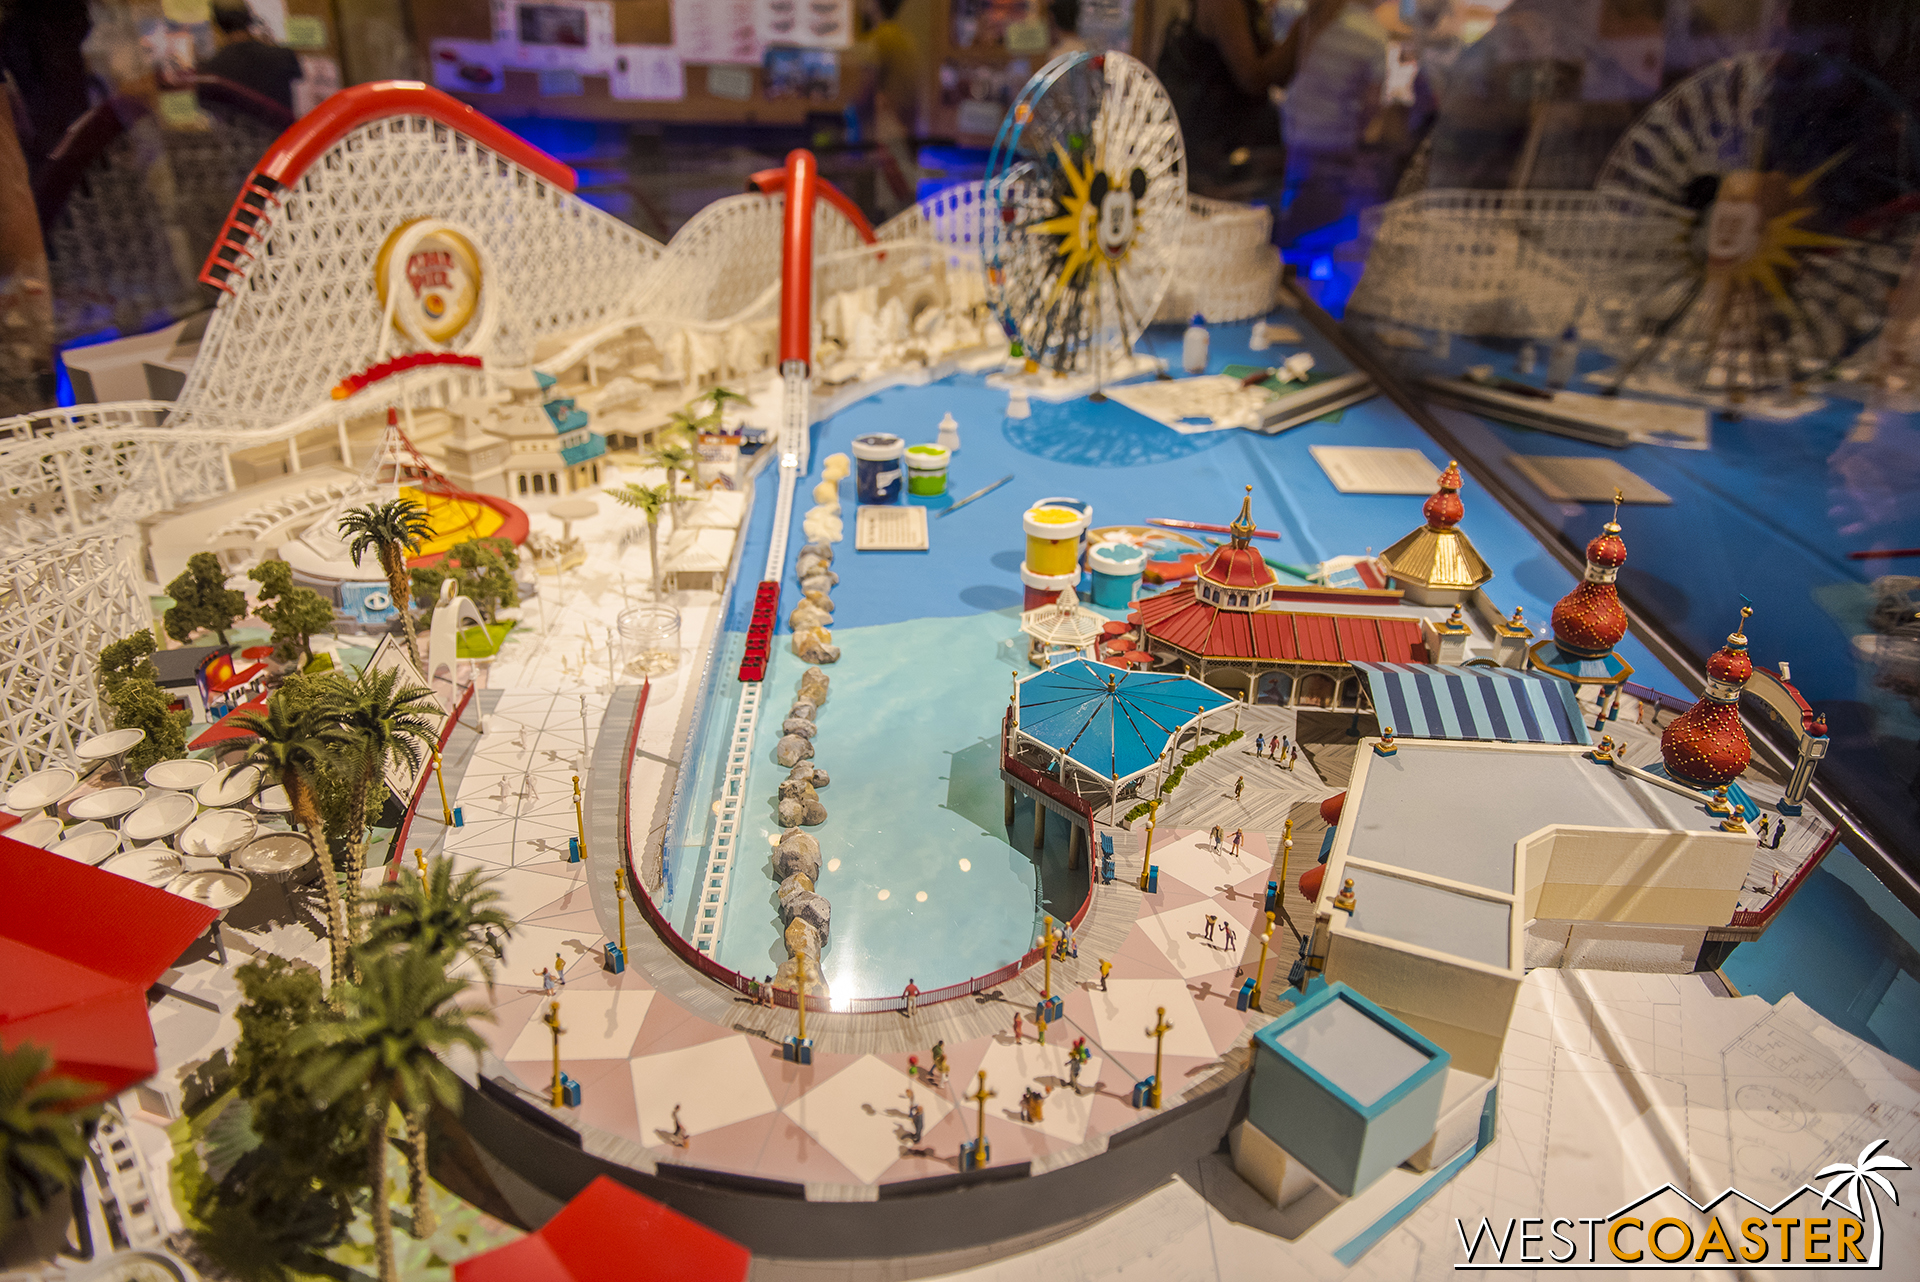 There is also an overall Pixar Pier site model.